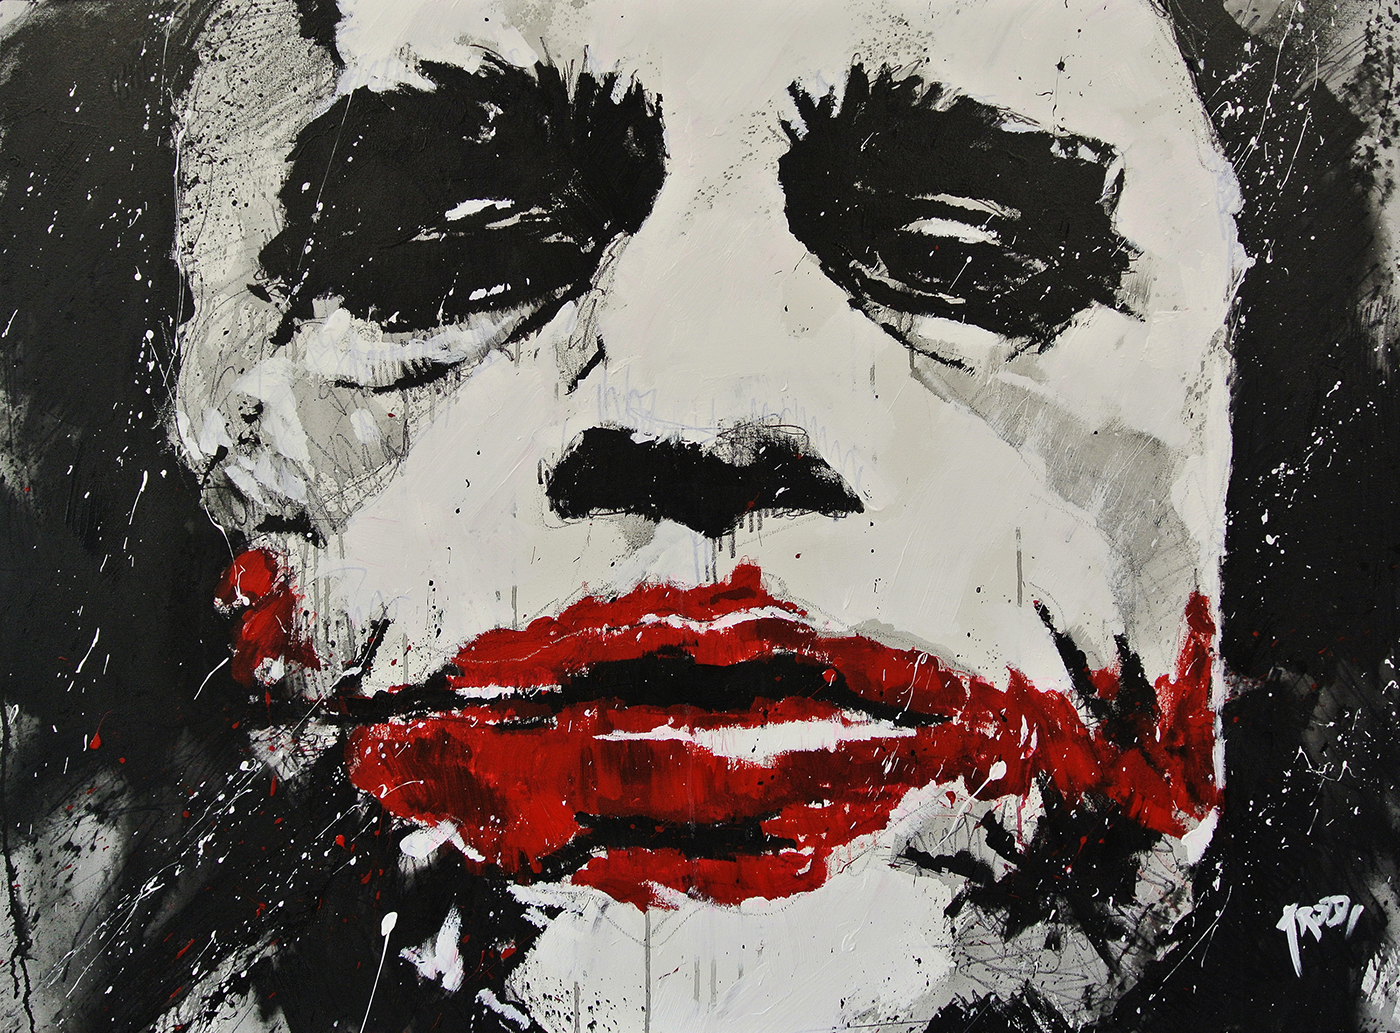 Painting of Heath Ledger as the Joker by Eduardo Valdivieso